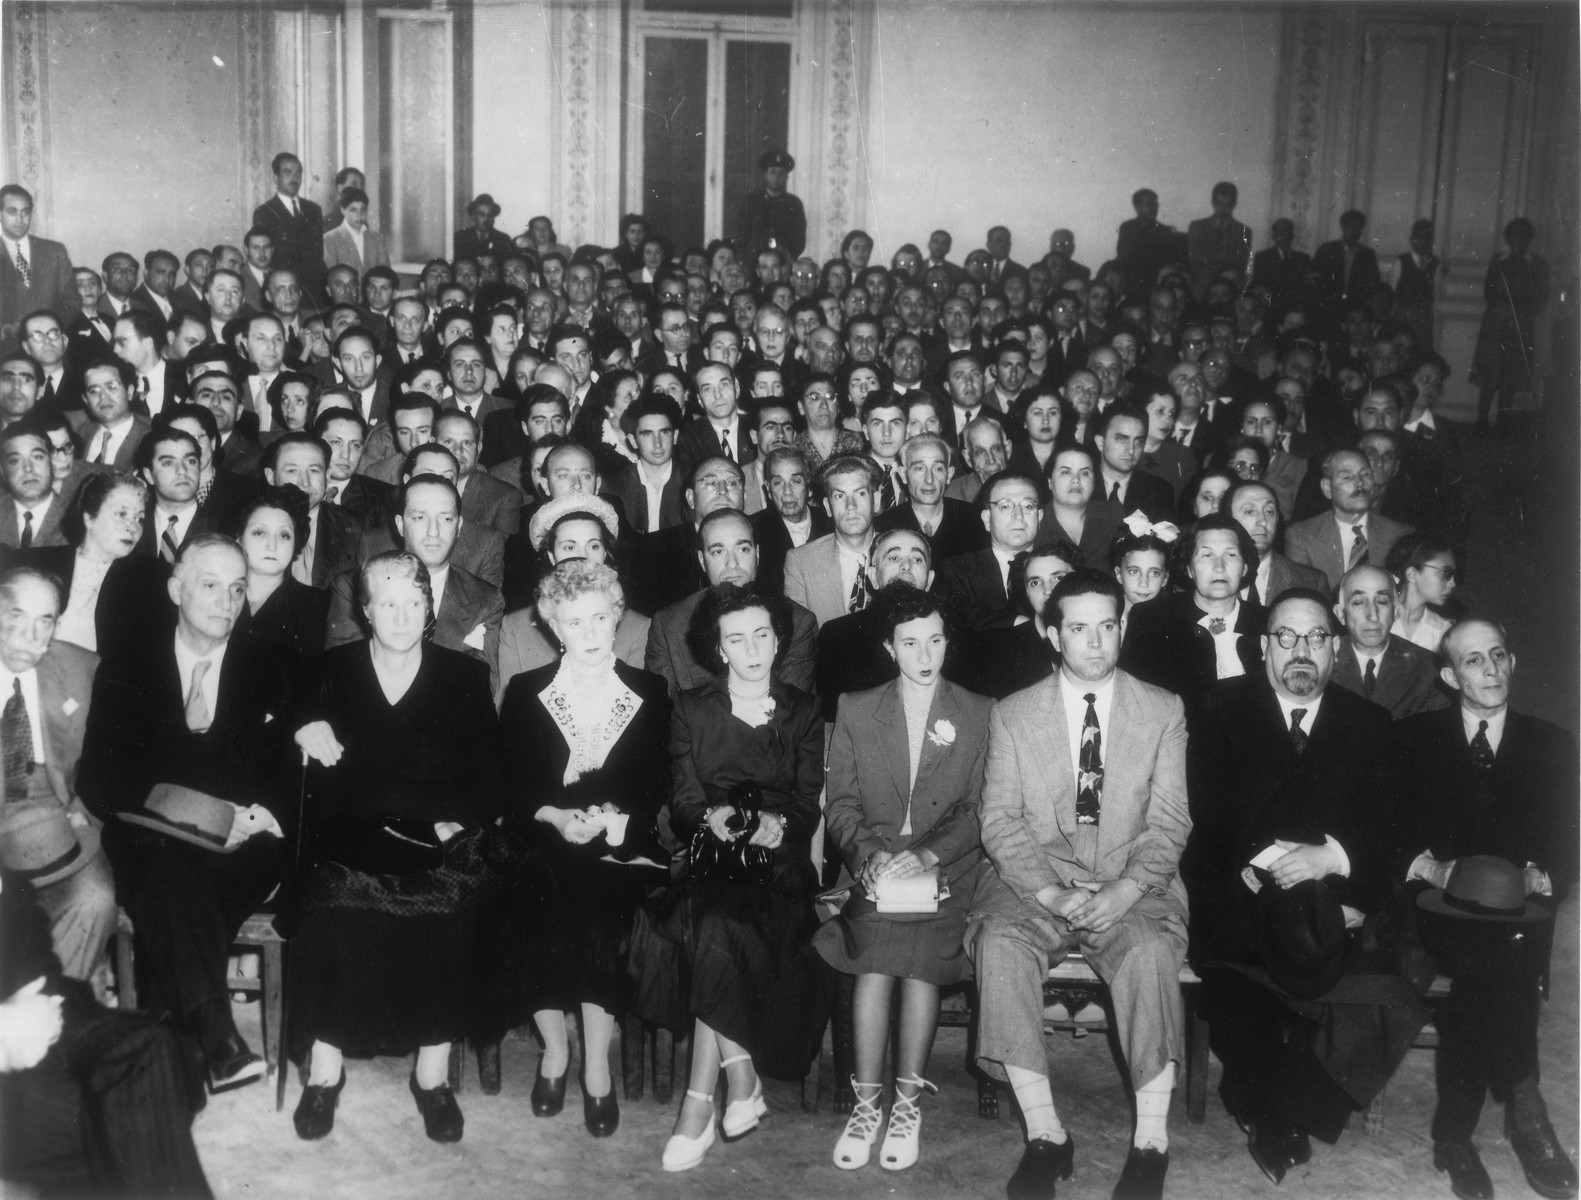 A large crowd assembles in the Parnassos lecture hall in Athens to celebrate the founding of Israel.    Rabbi Elias Barzilai is seated in the front row, second from the right.  Jack Amar is seated on the far right.  Also pictured are Noah Yeshouroun, Sylvia Levy, Freddy Barouh, Rosetta Vital, Noulis Vital, Elias Leon, Markos Tabach, Michael Matsas, Pepo Benouziglio, Lydia Shabetay, and Kaimis.